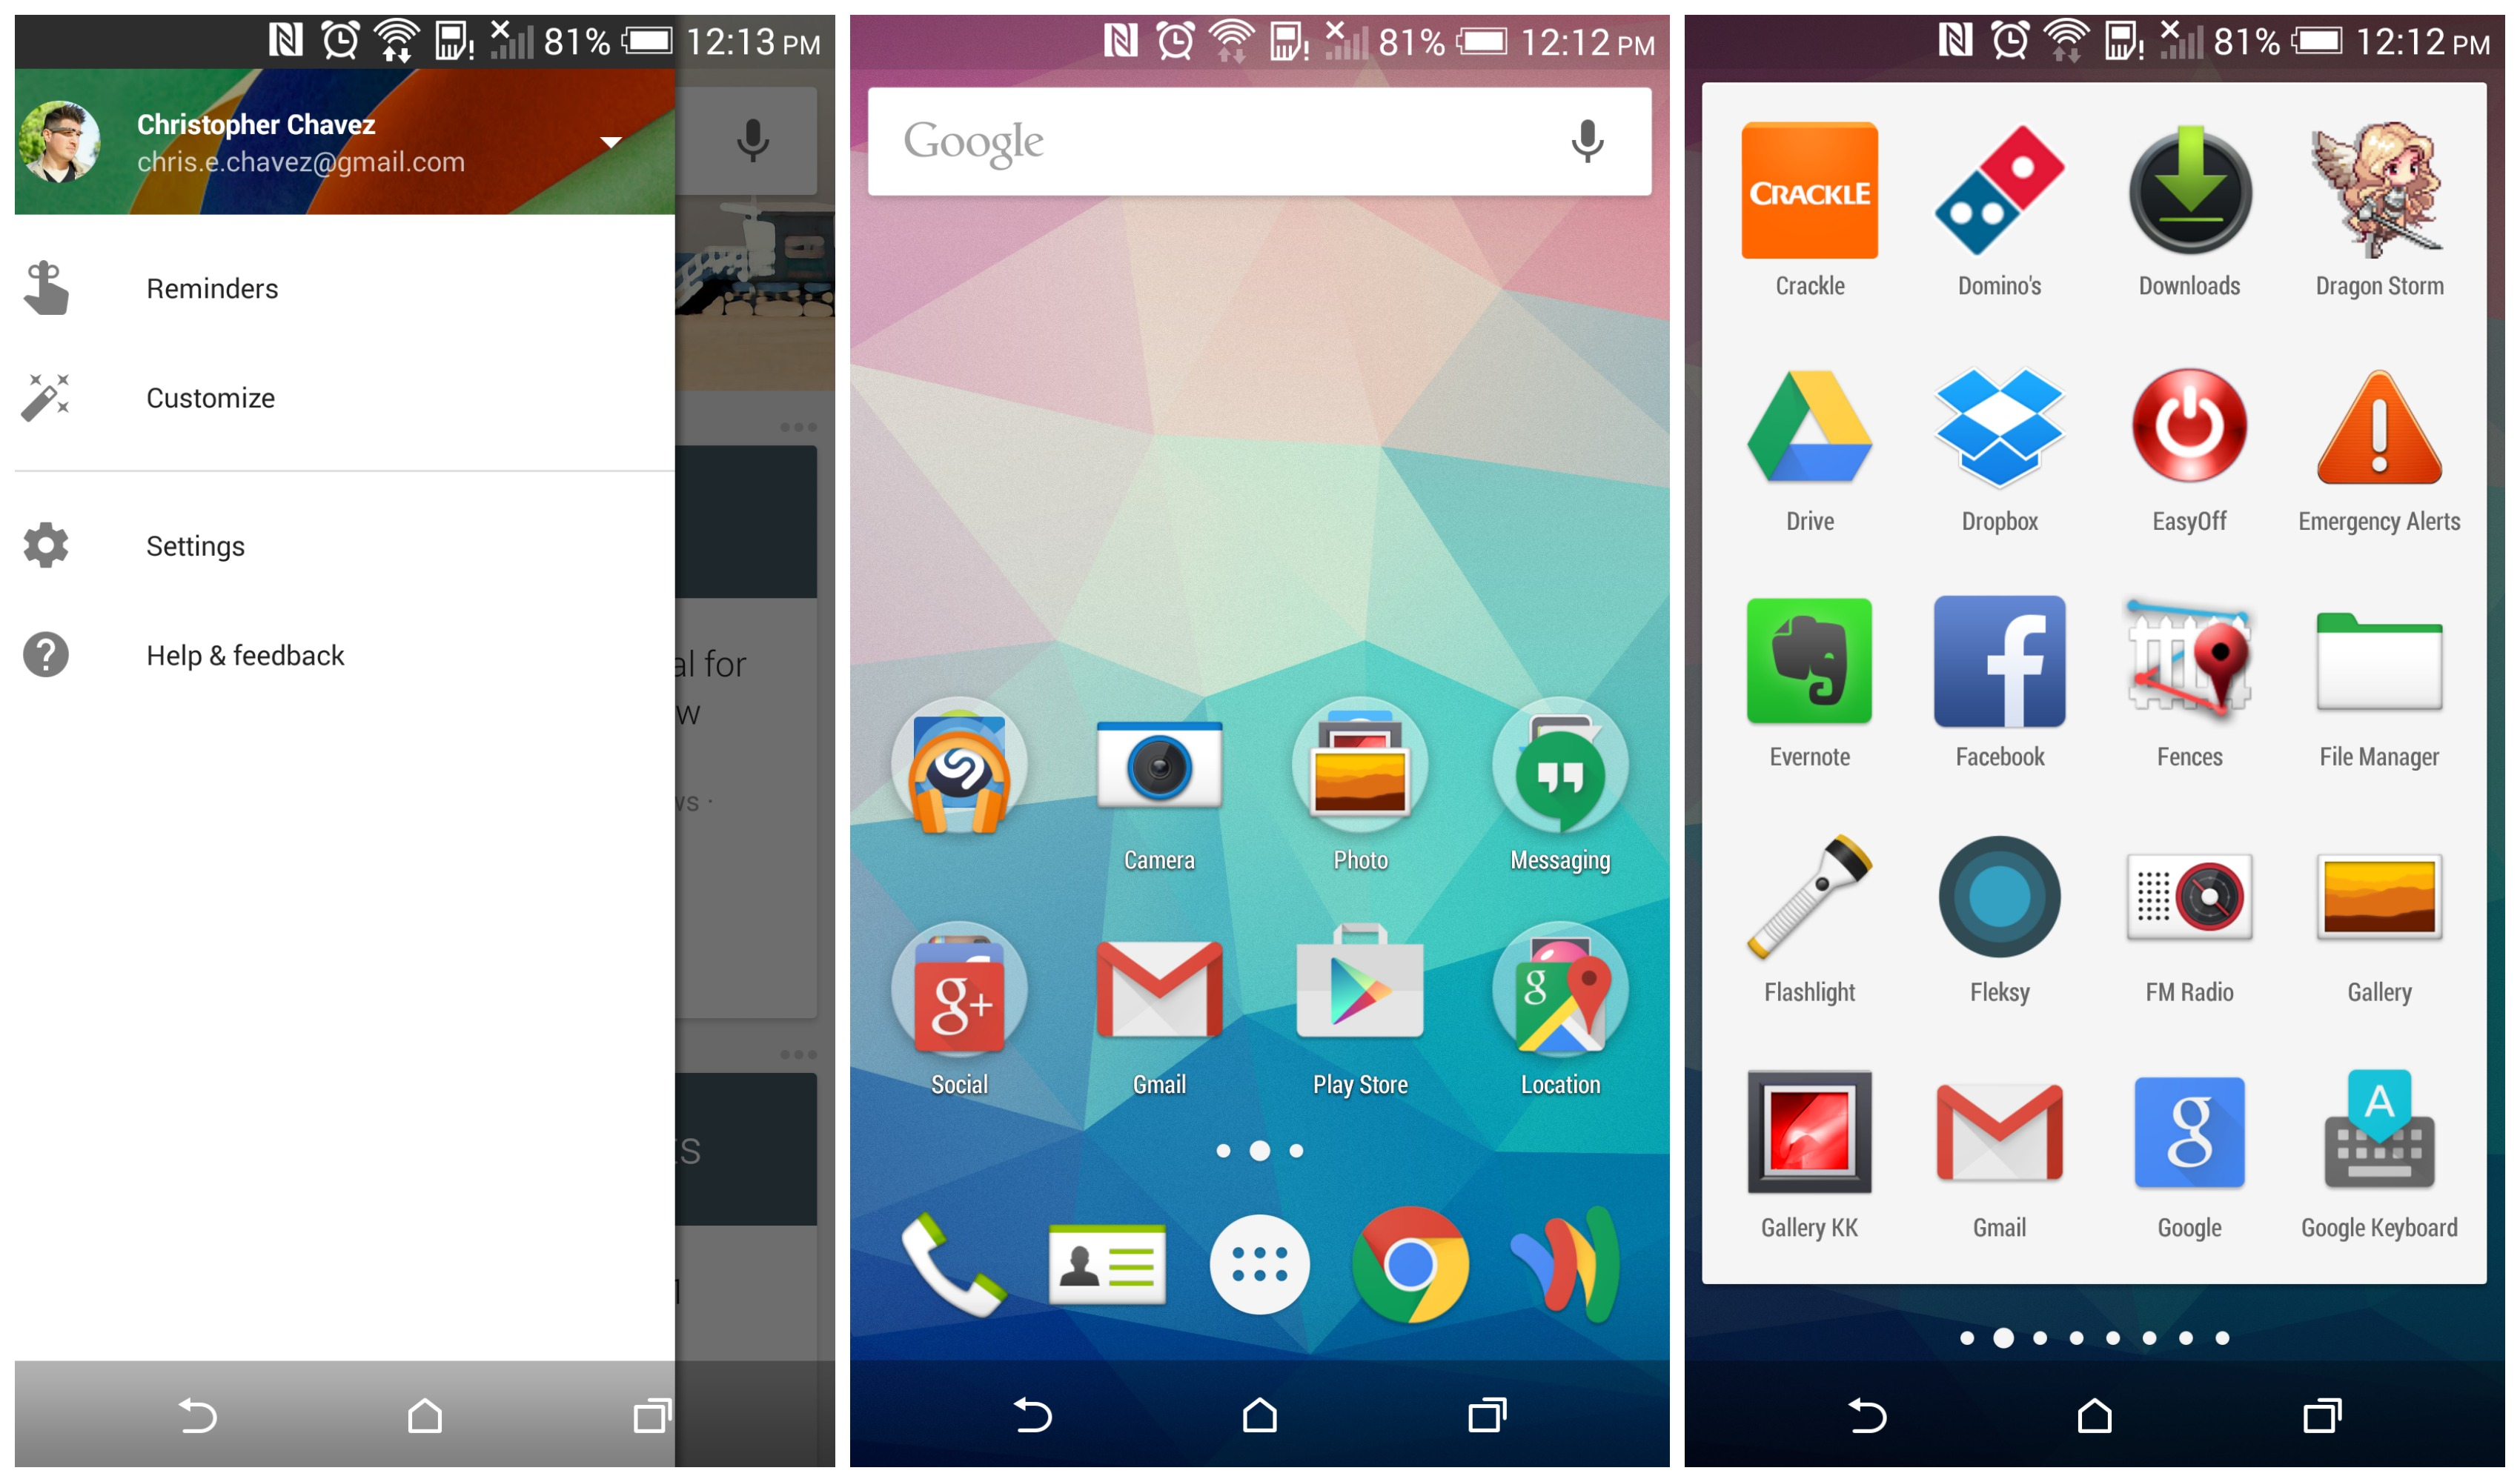 Google app update brings refreshed Google Now Launcher and ...